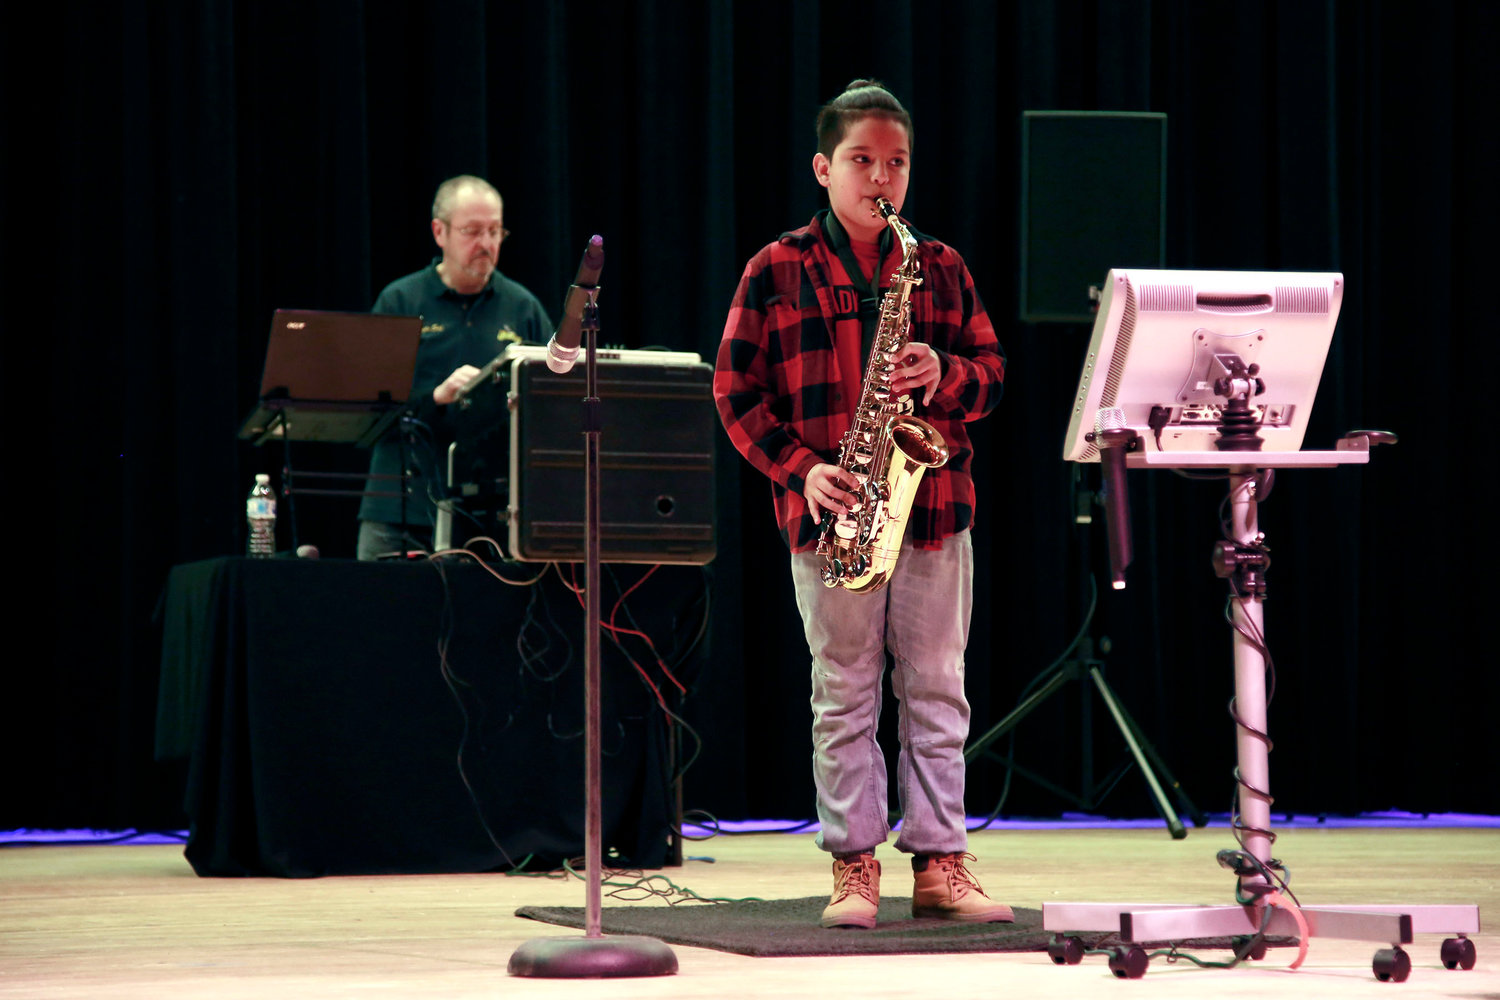 Mailo Rozas Catalan, a fifth-grader, performed a medley of songs on the saxophone.